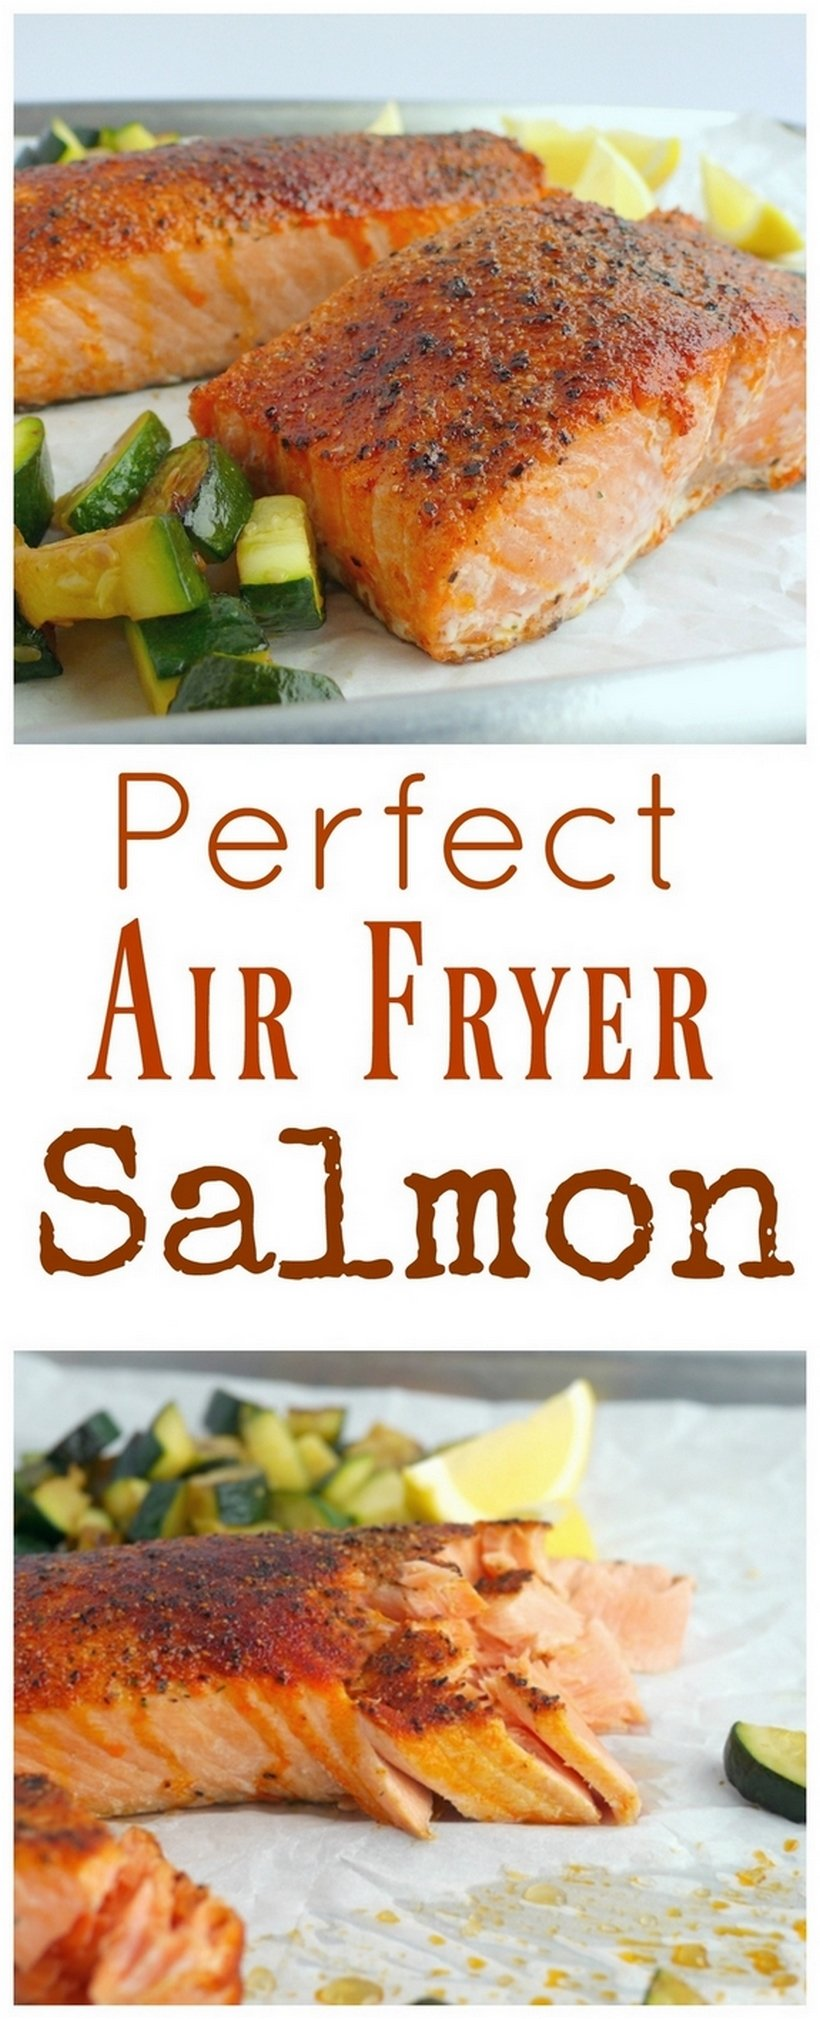 Pieces of cooked salmon with the words perfect air fryer salmon written on the image.